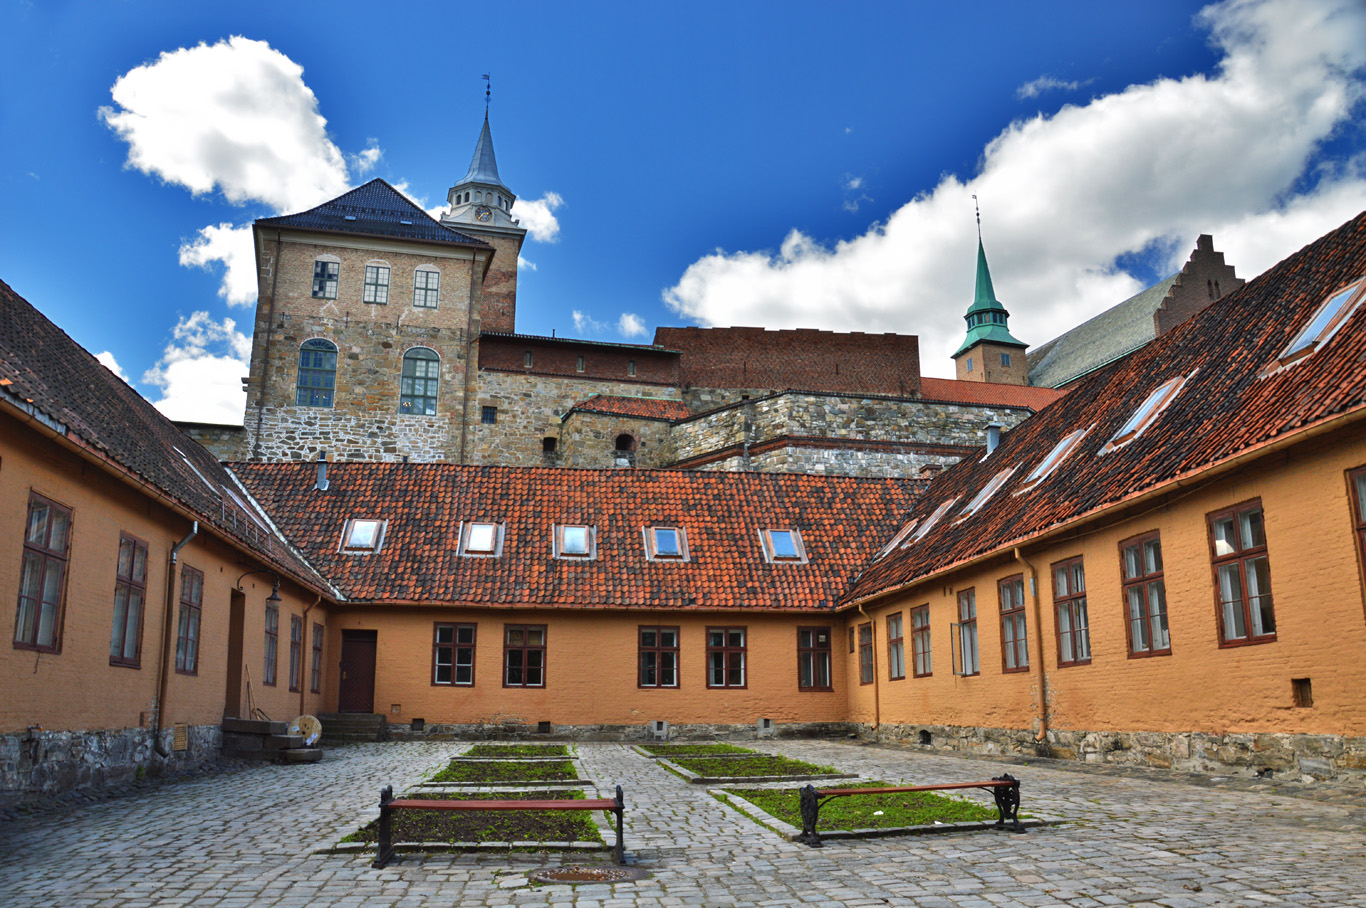 Arkeshus Castle in Oslo